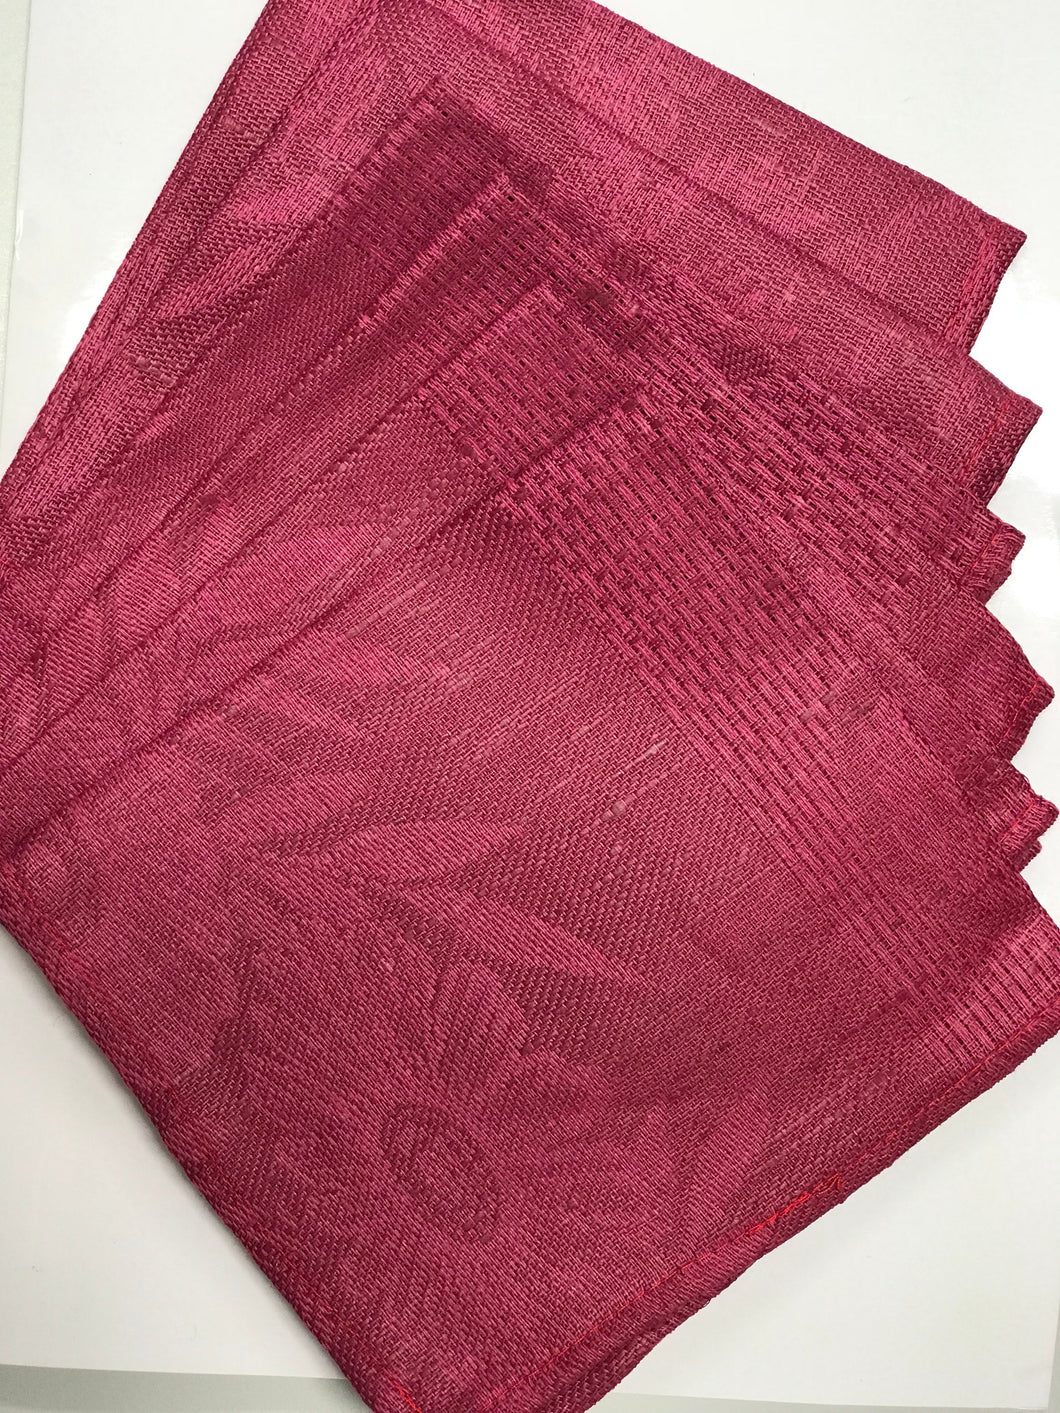 Pure linen napkins pack of 6 burgundy